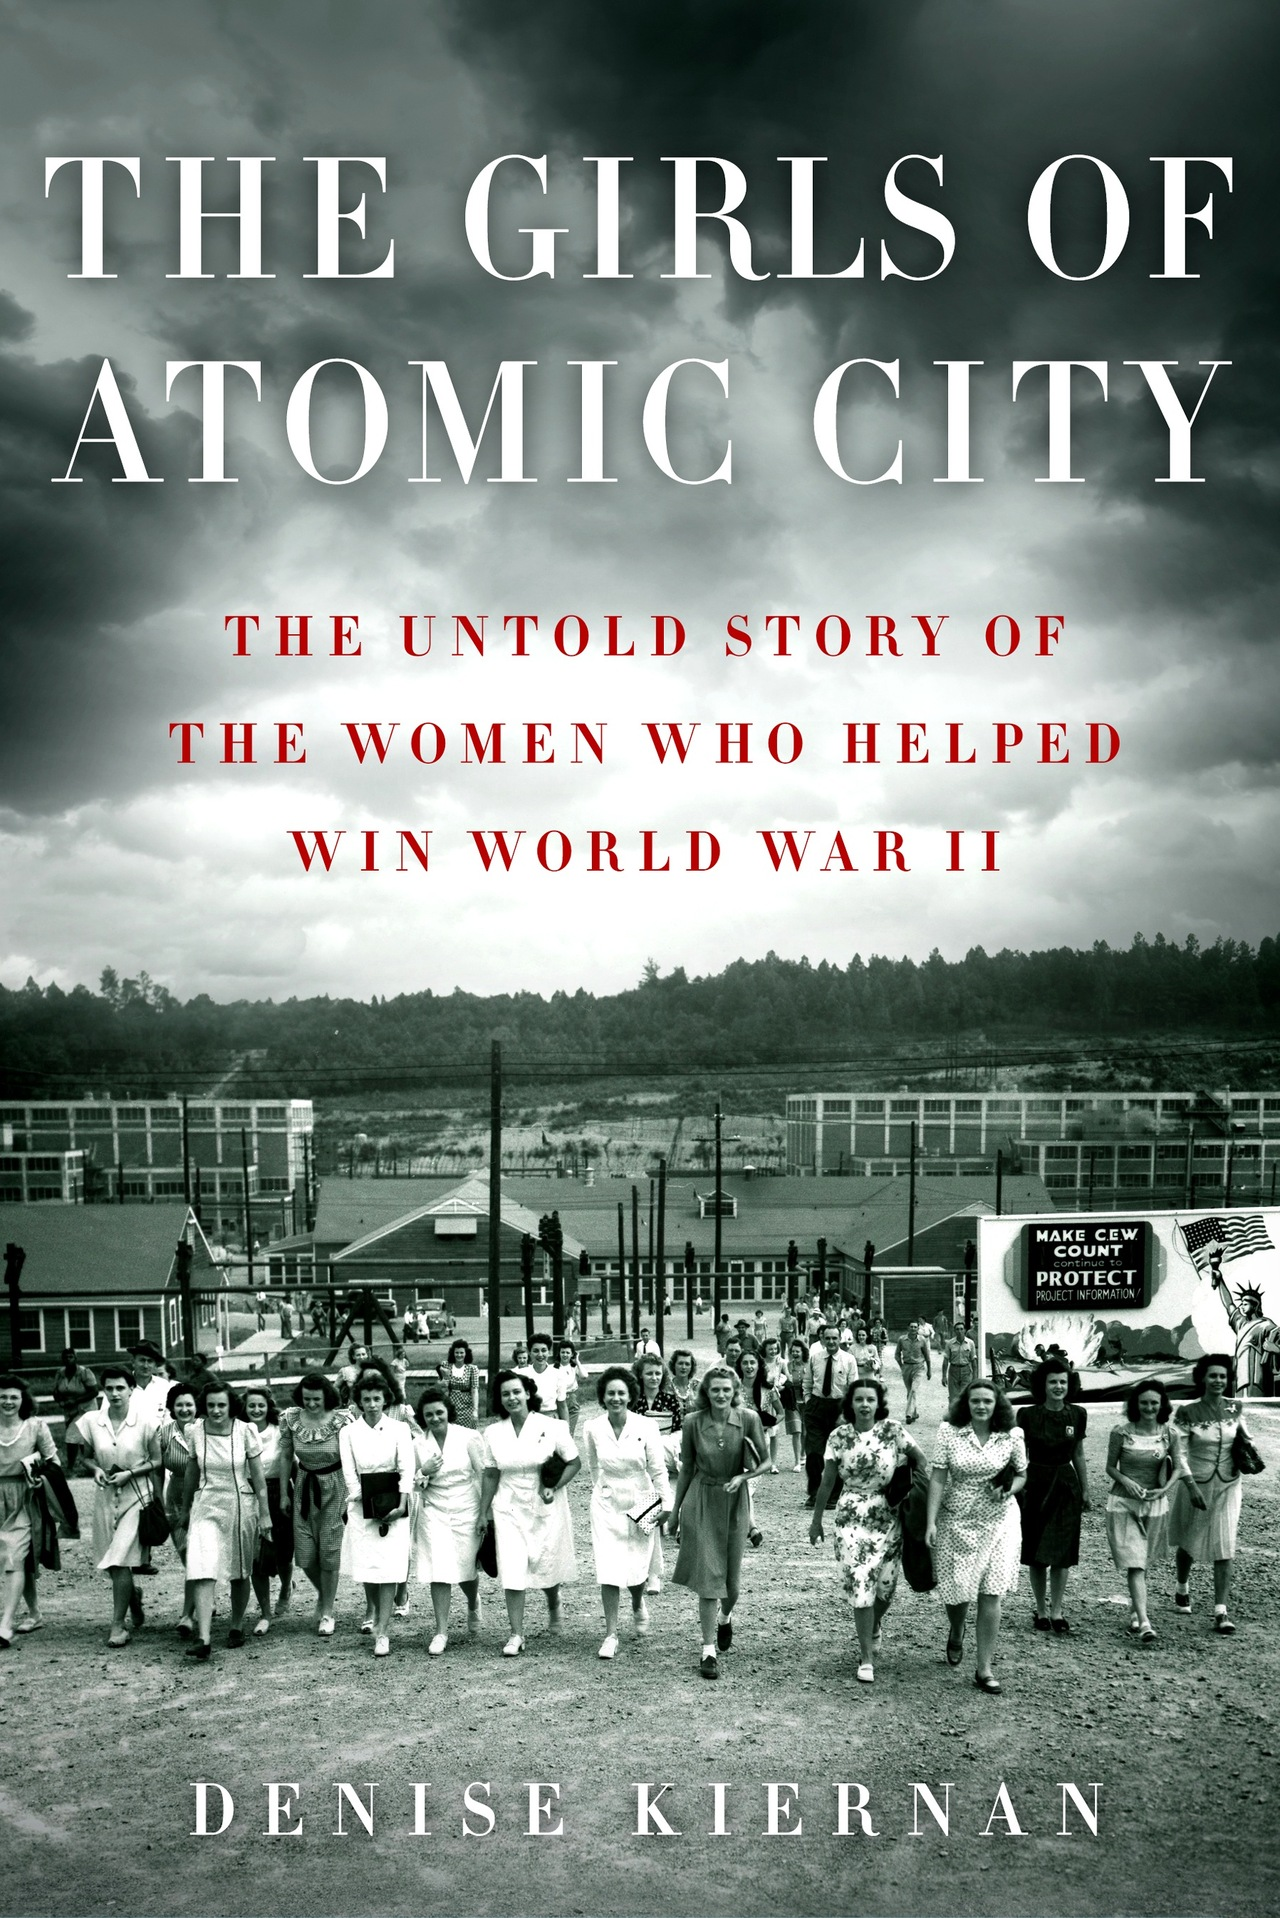 The Girls of Atomic City—take two! My wife's publisher cooked up a new cover to her WWII book, which pubs in March. It's a long story, which I'll save for a rainy day. In the meantime, the pre-order giveaway continues apace. If you buy the book and forward a receipt, you'll be entered to win a Nook ereader. Details found here.